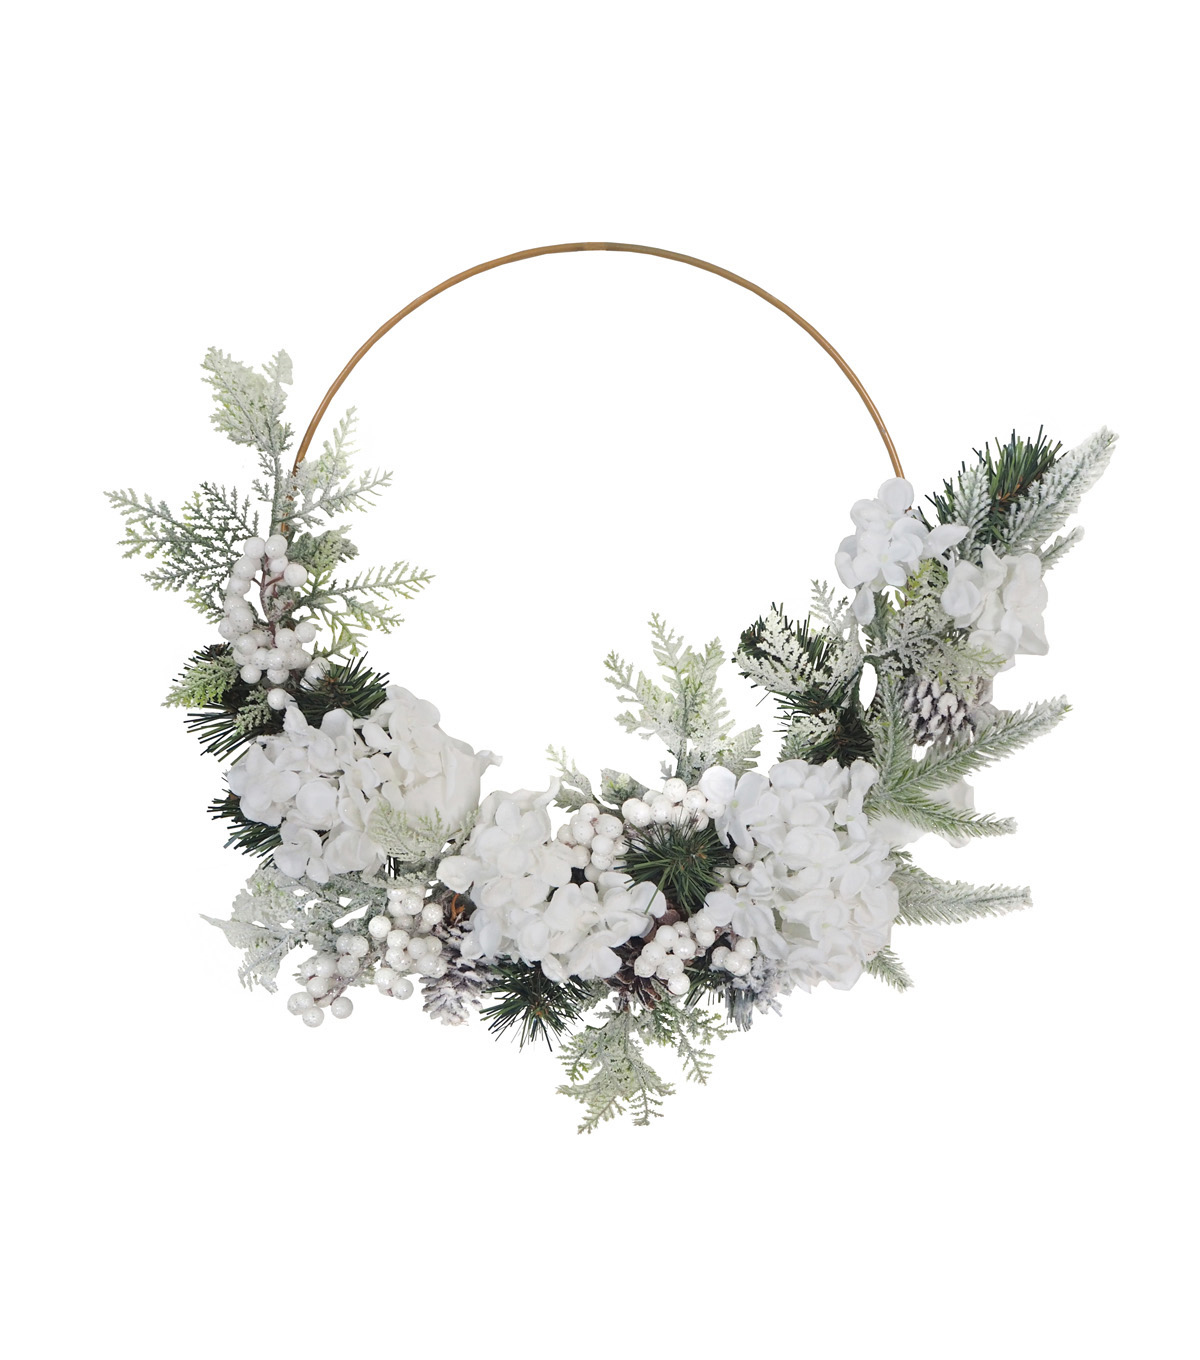 Blooming Holiday Christmas Frosted Hydrangea Minimalist Wreath-White